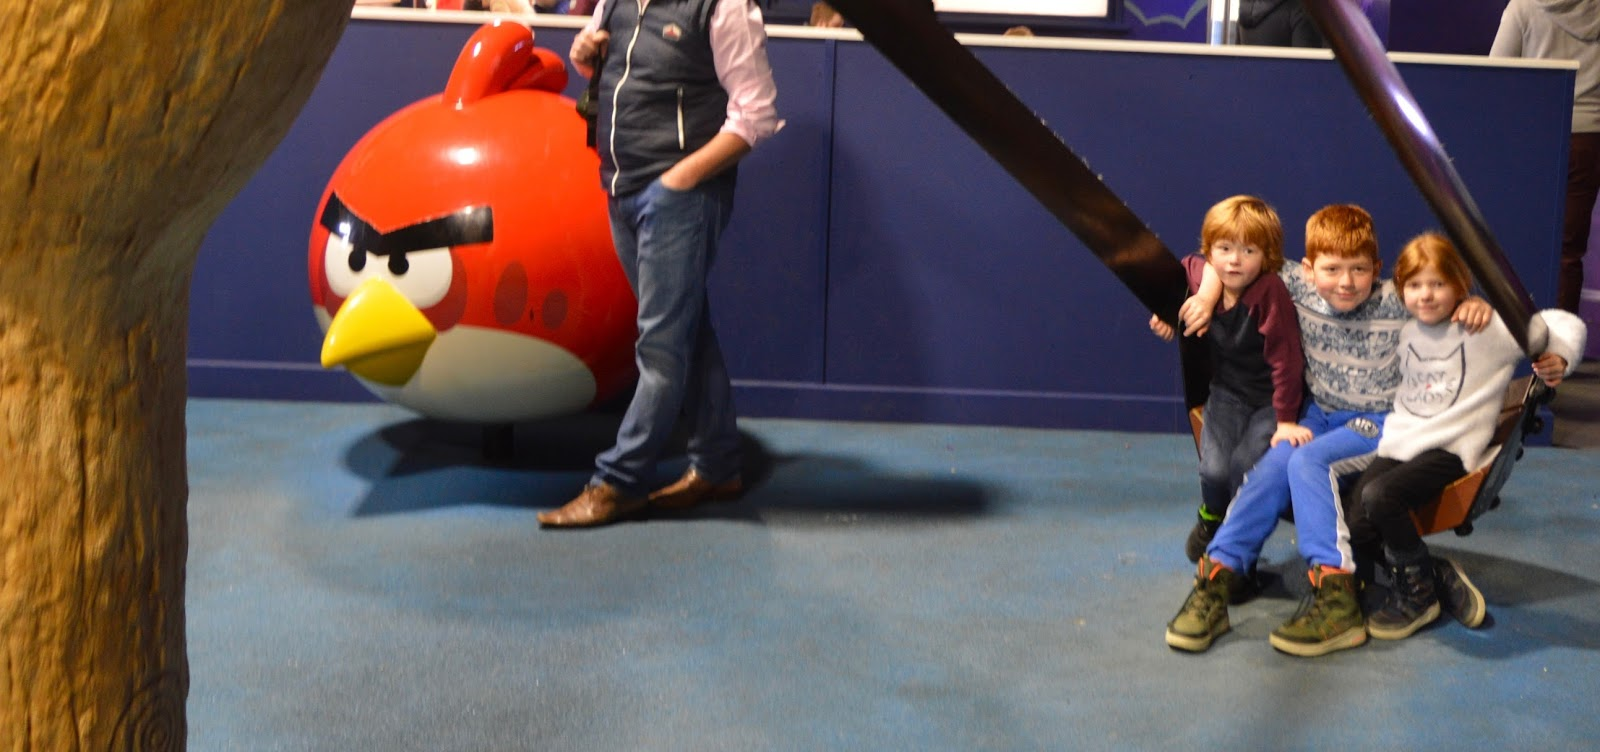 Visiting Angry Birds Activity Park at Lightwater Valley, North Yorkshire - indoor space themed play area